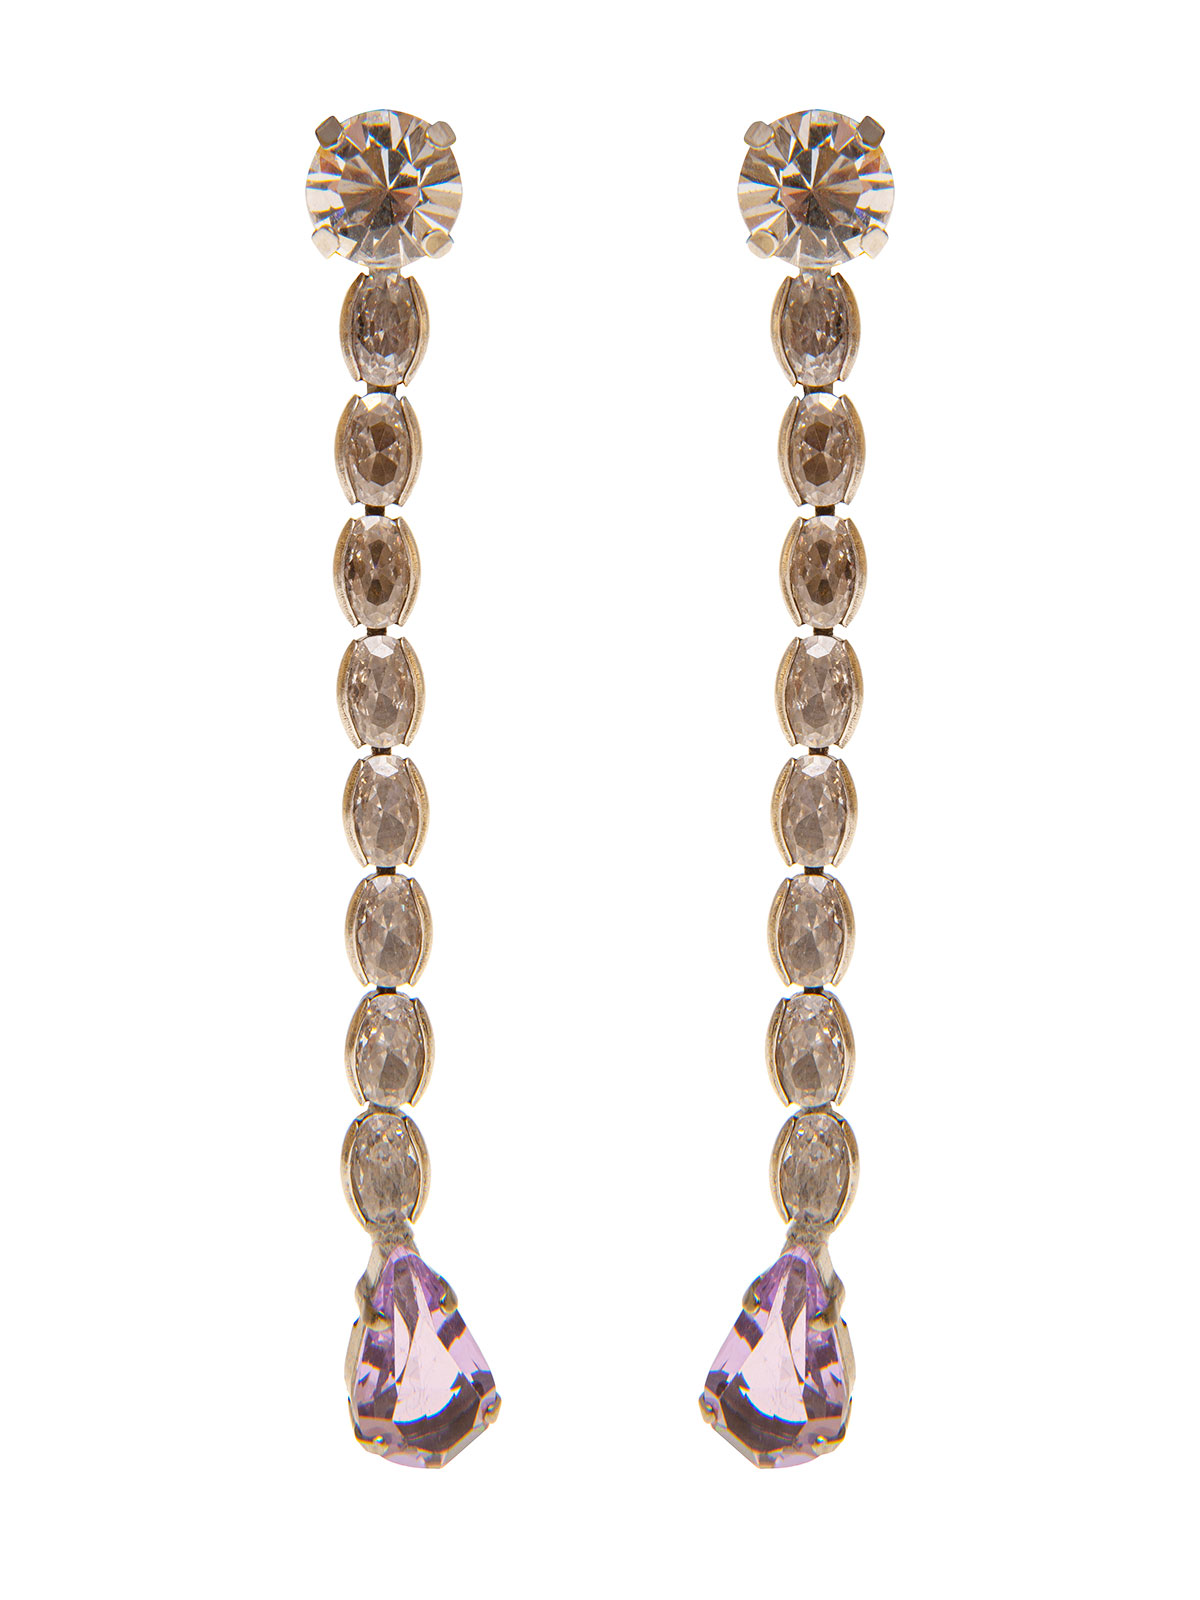 Stone pendent earrings with glass drops